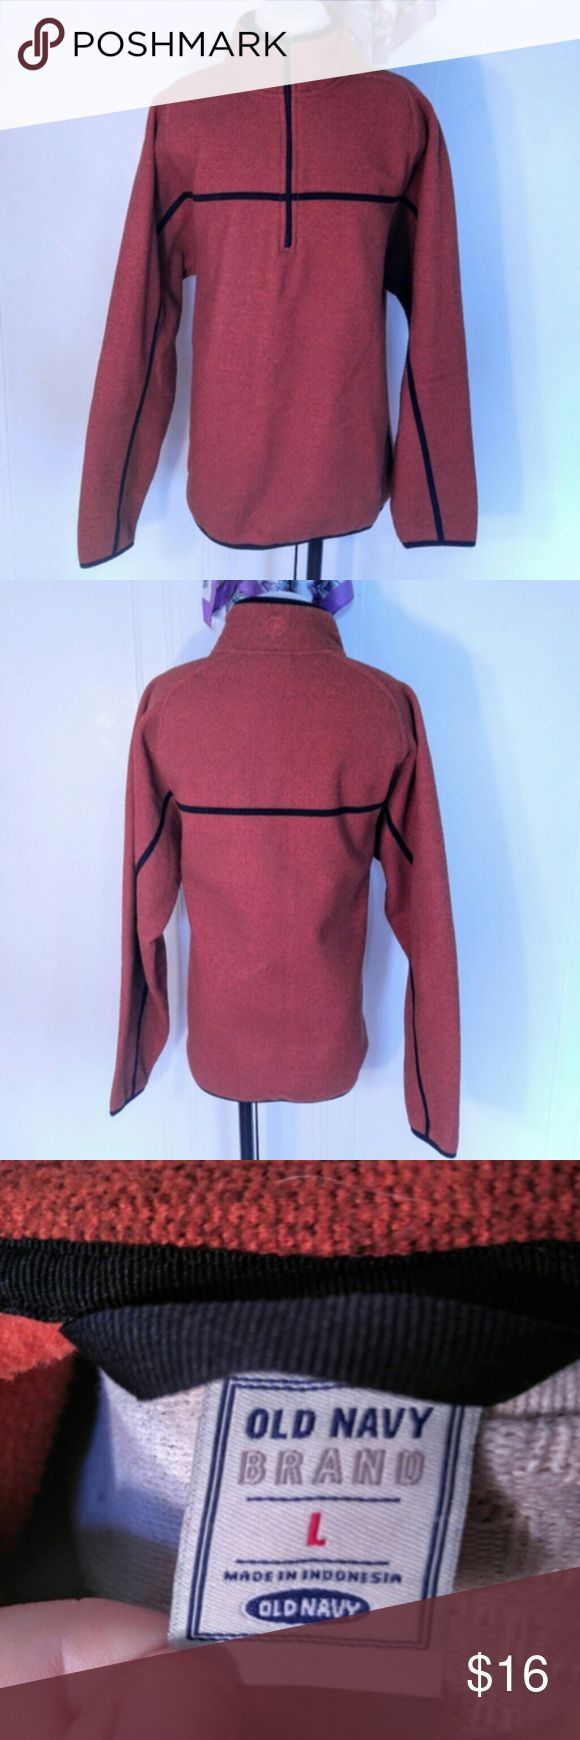 """Old Navy Burnt Orange 1/2  Zip Pullover Sweater Old Navy Burnt Orange Zip Pullover Sweater  Excellent used condition. Size: Large Measurements Taken Flat: Length: 29"""" Chest: 25"""" Materials: 100% Polyester Old Navy Jackets & Coats Lightweight & Shirt Jackets"""